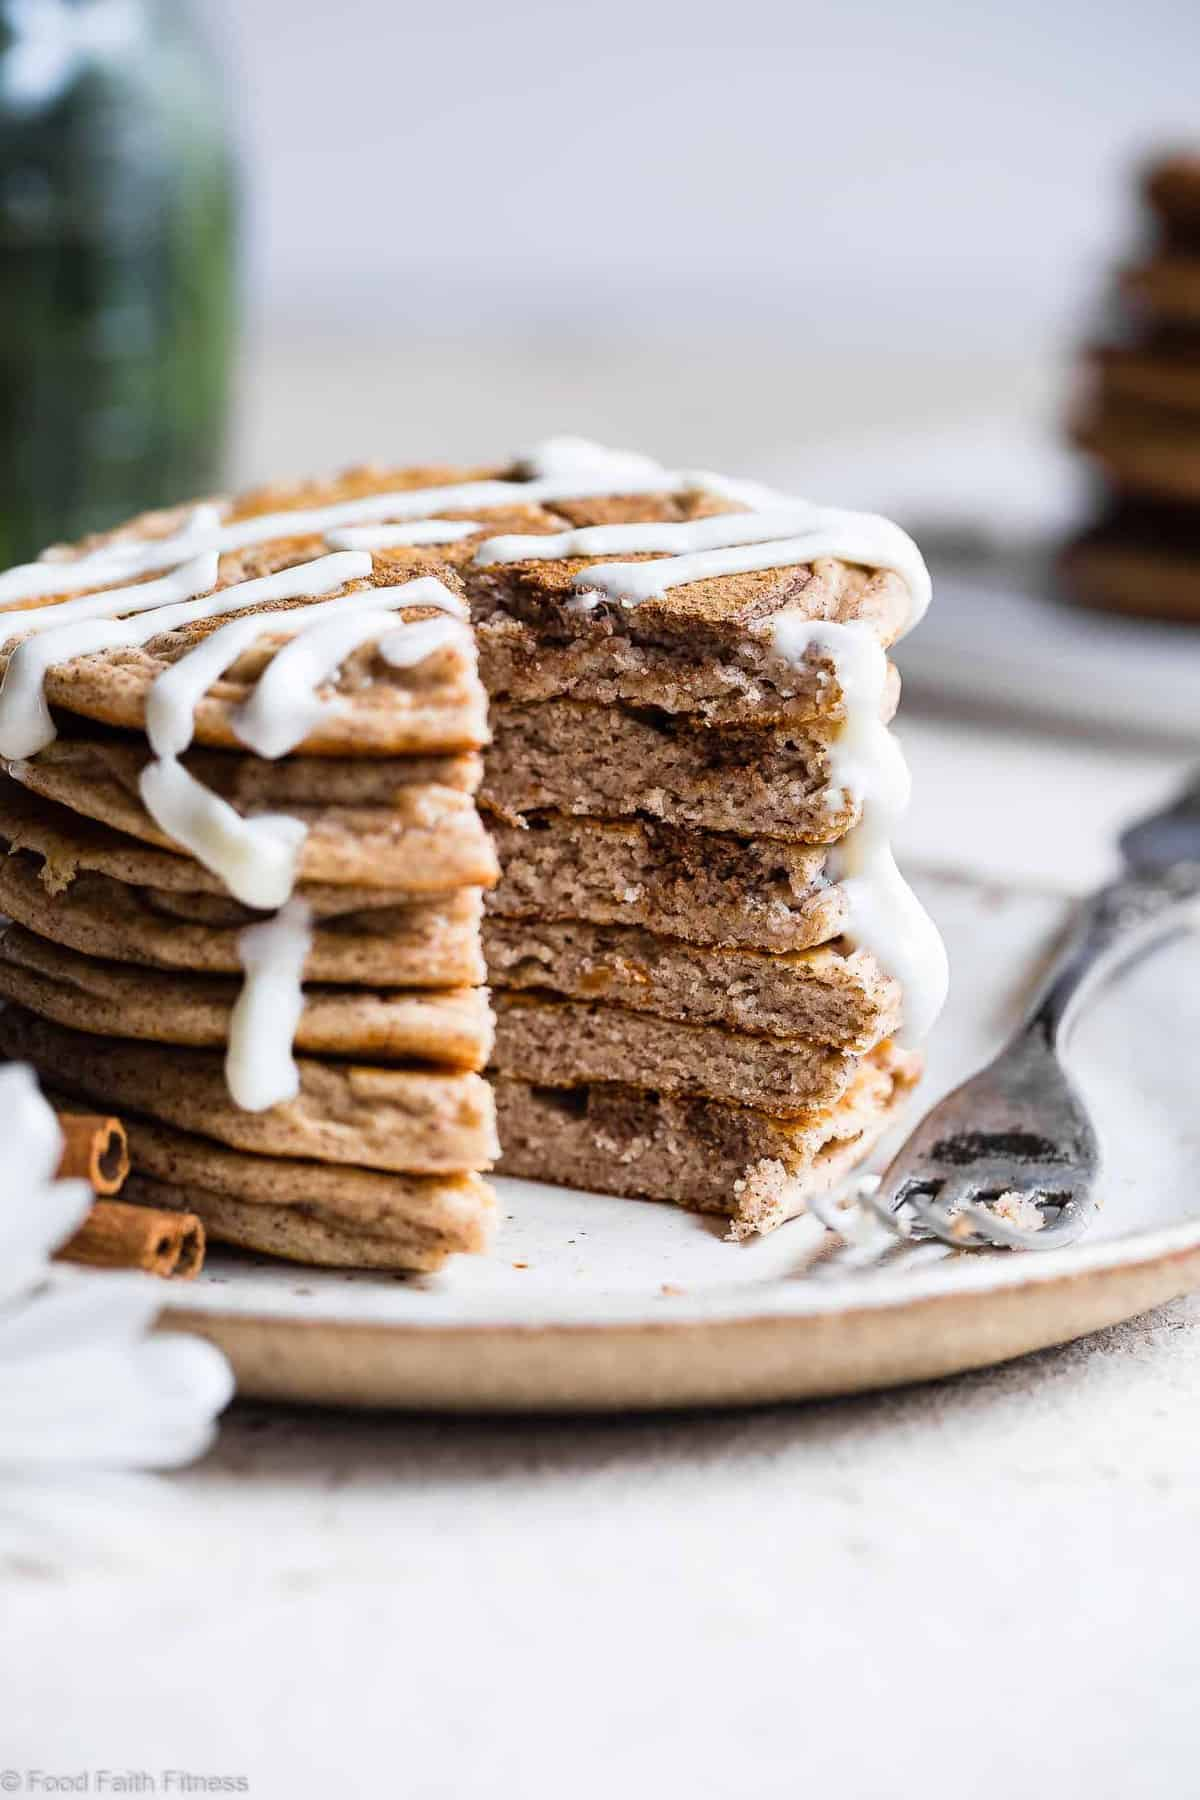 Cinnamon Roll Keto Protein Pancakes -This EASY, low carb, gluten free healthy protein pancakes recipe is going to be your new favorite breakfast! Great for kids and adults and packed with 23g of protein!Who doesn't want to wake up to healthy cinnamon rolls?! | #Foodfaithfitness | #Keto #Lowcarb #Glutenfree #Healthy #Pancakes